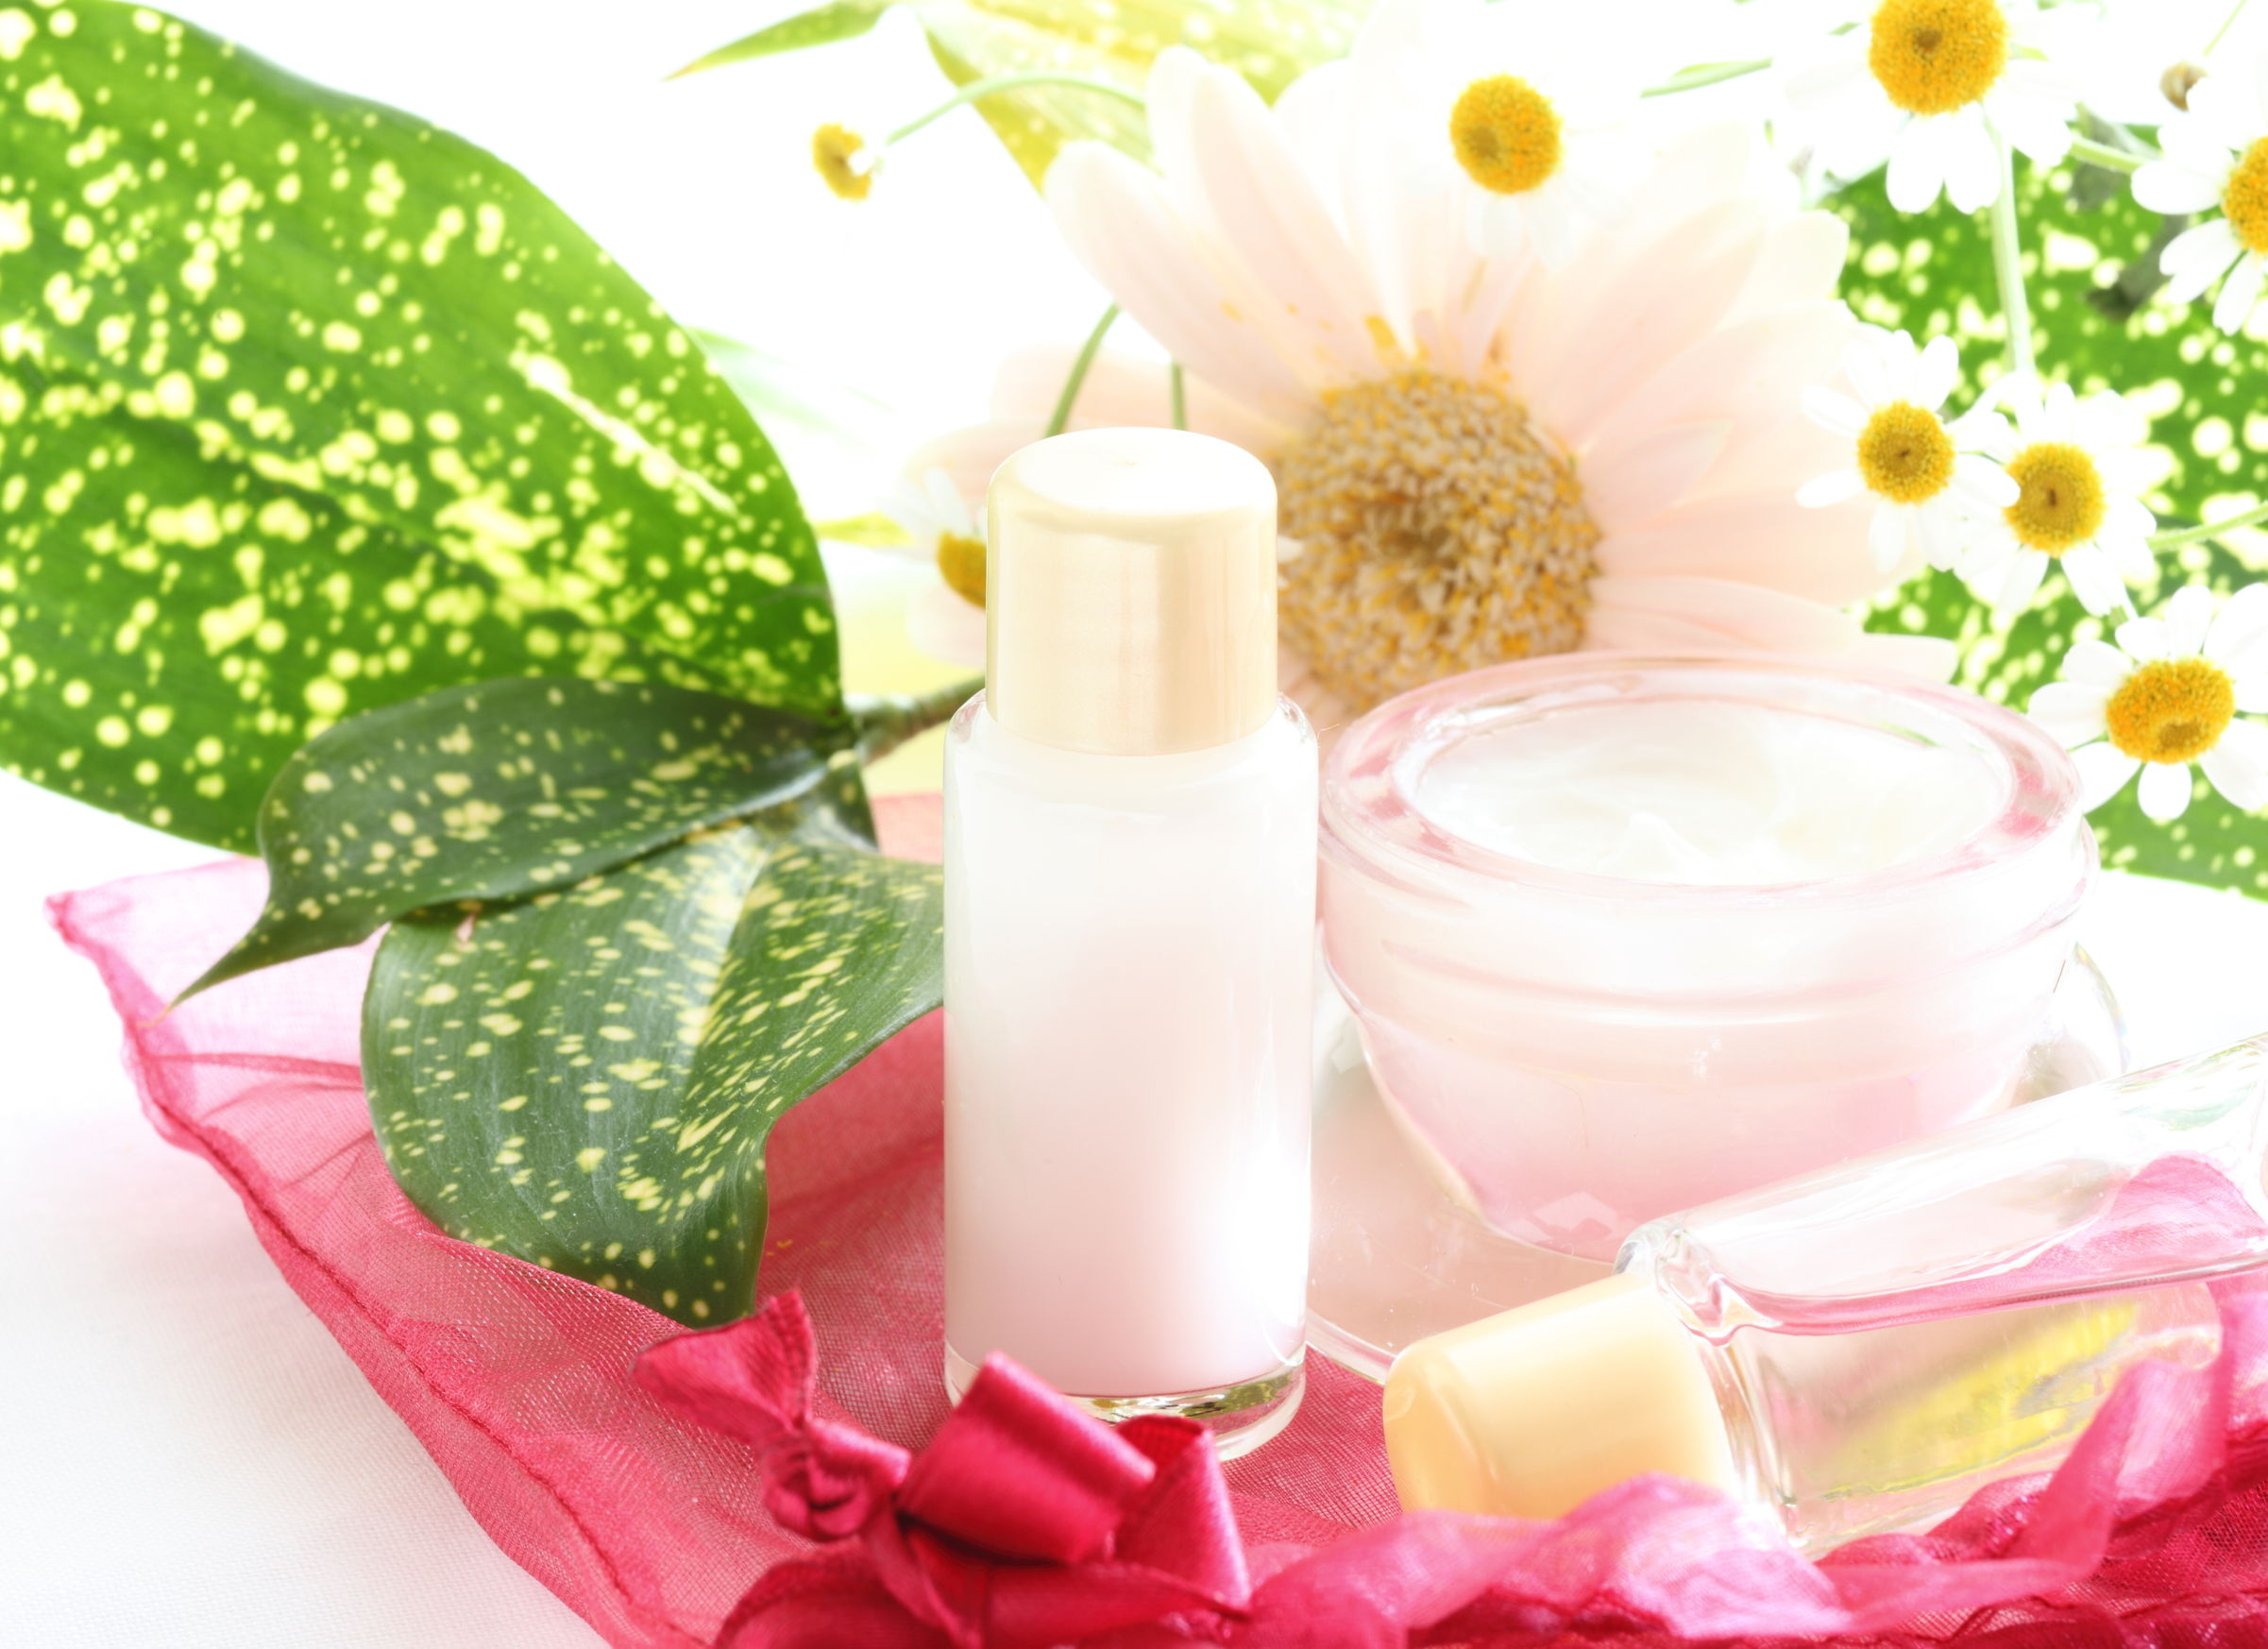 46282073 - skin care cosmetic and daisy for beauty image